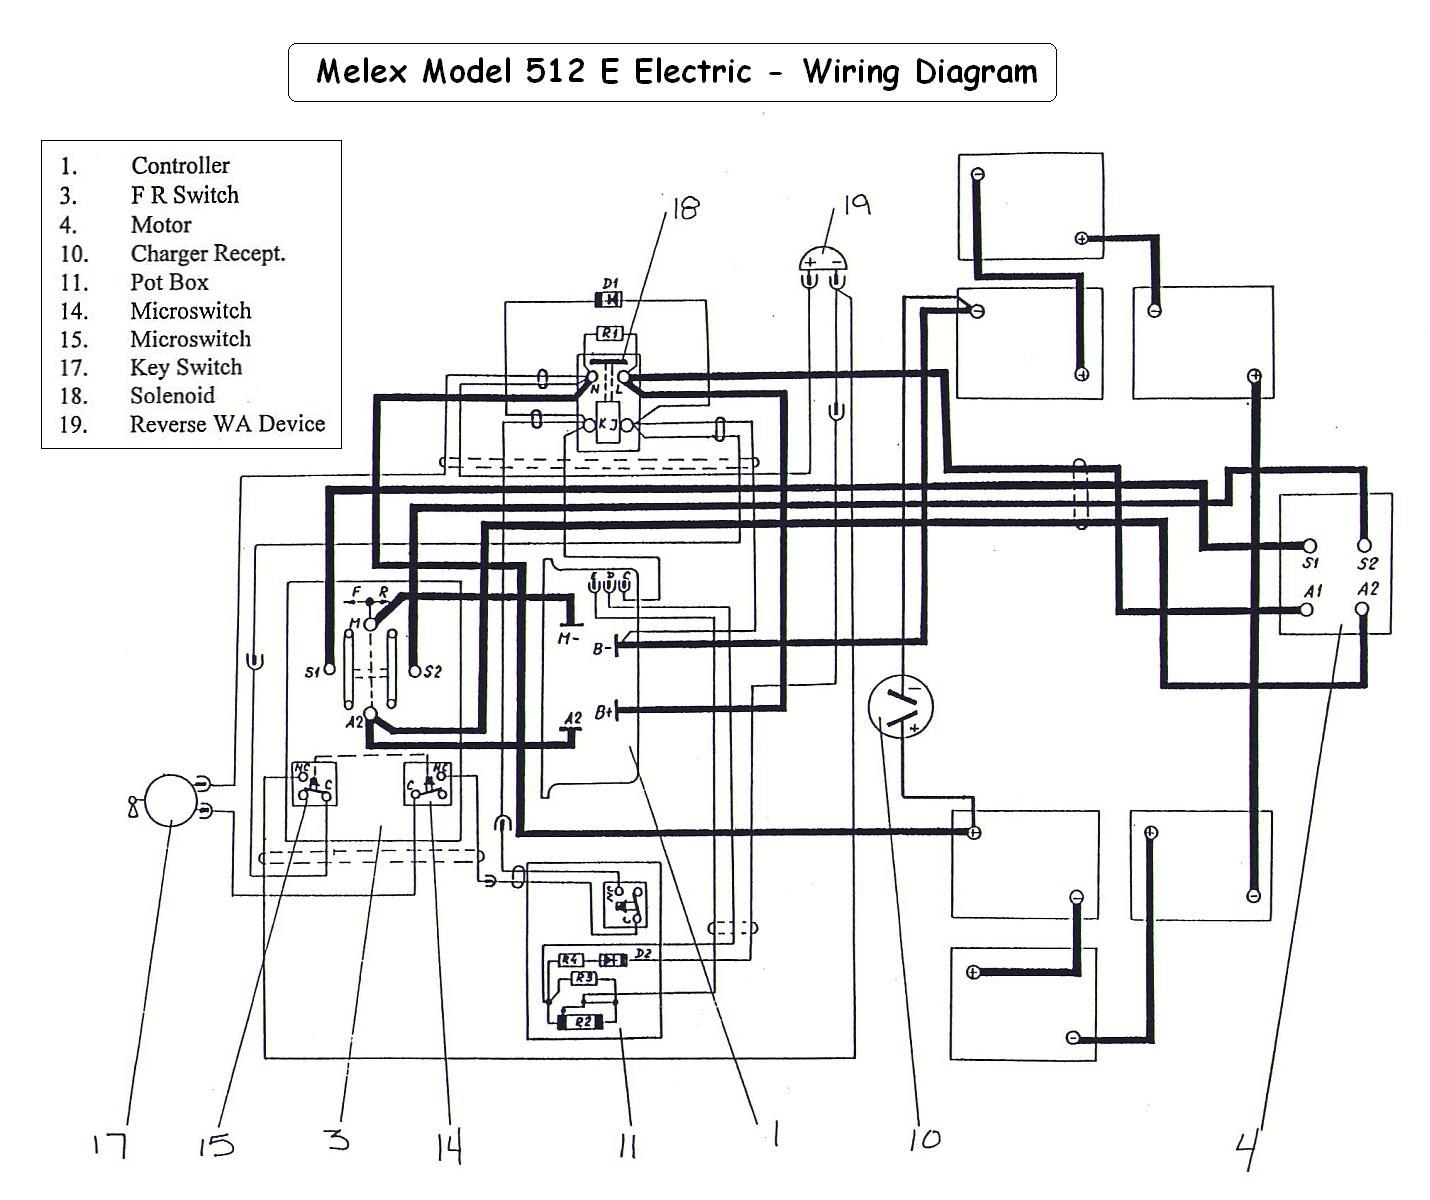 Melex512E_wiring_diagram vintagegolfcartparts com westinghouse golf cart wiring diagram at crackthecode.co